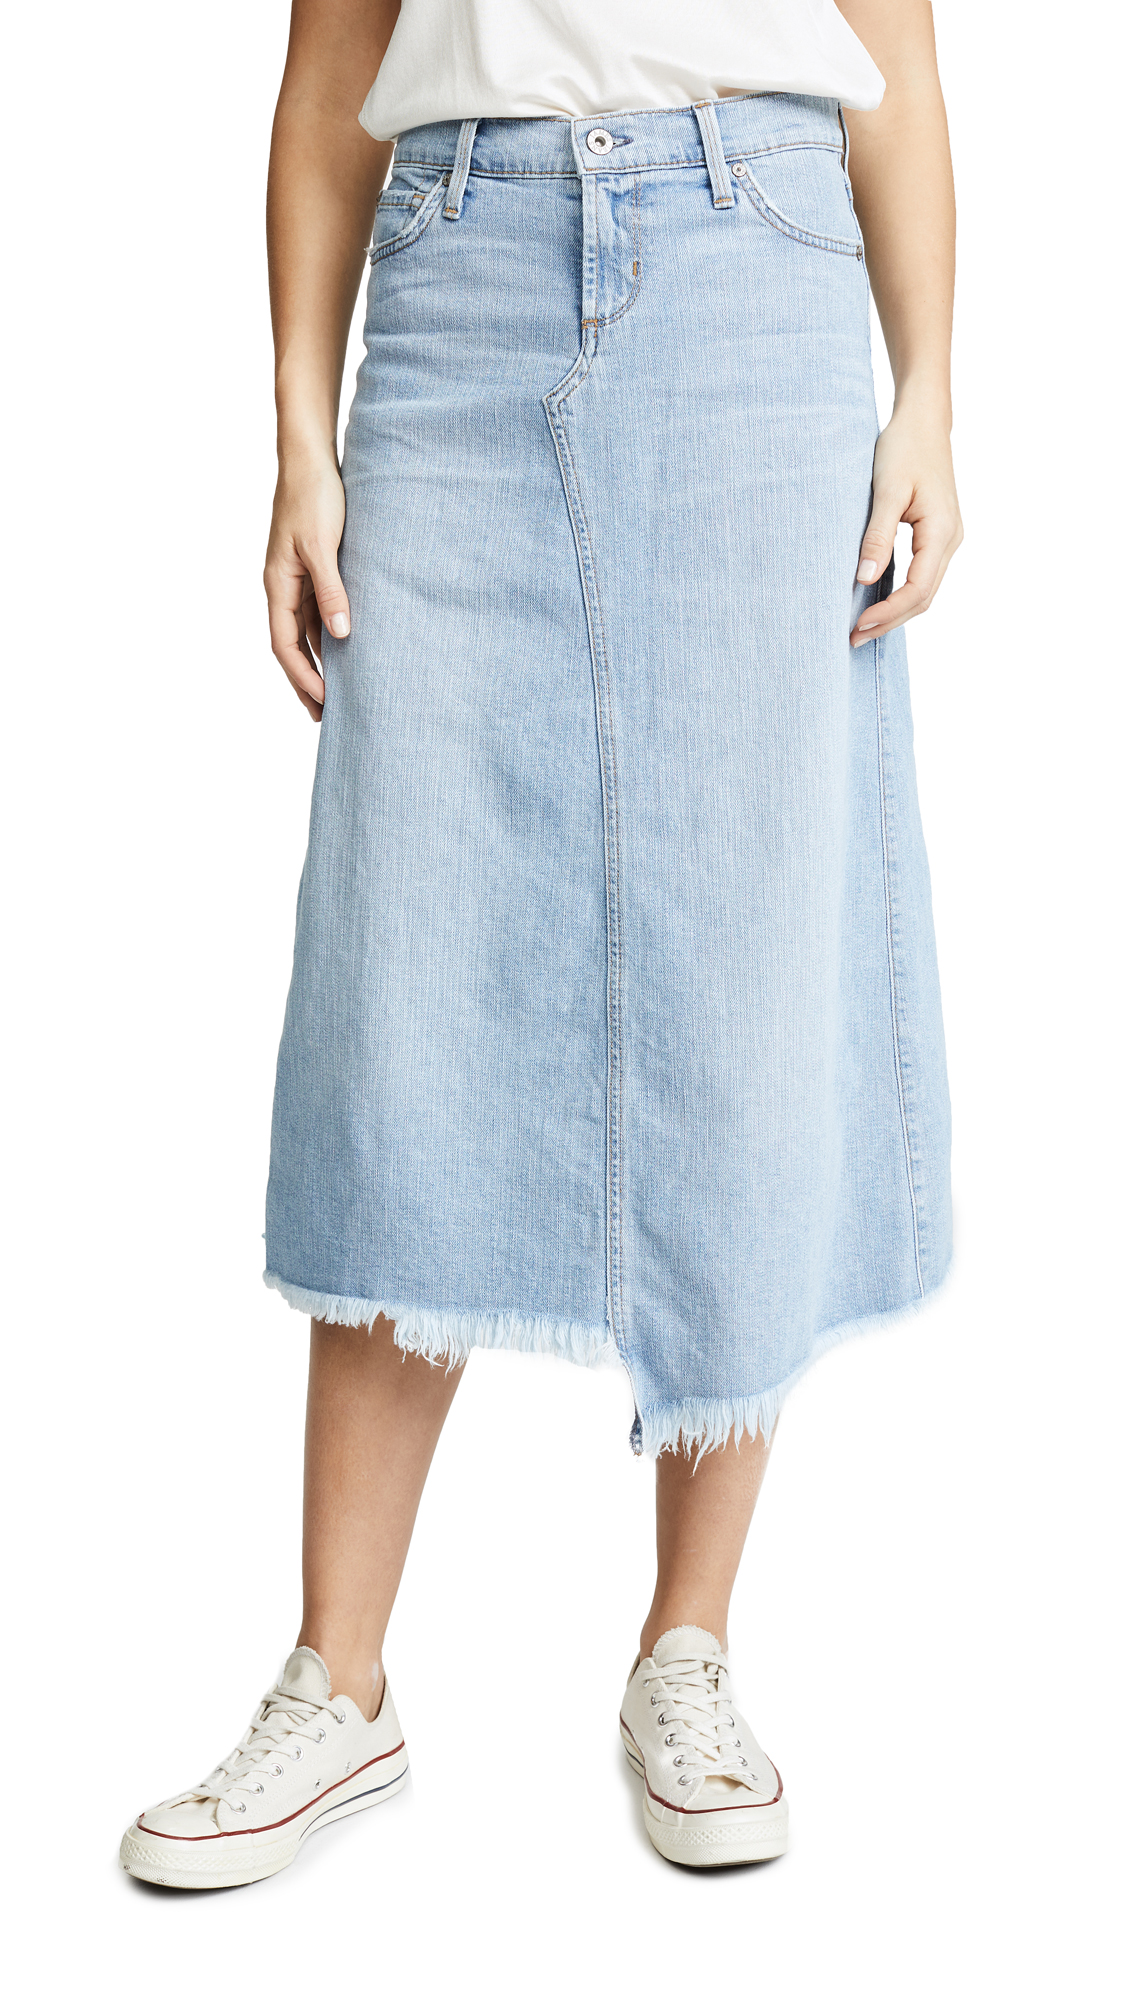 James Jeans Becky Skirt In Culture Shock